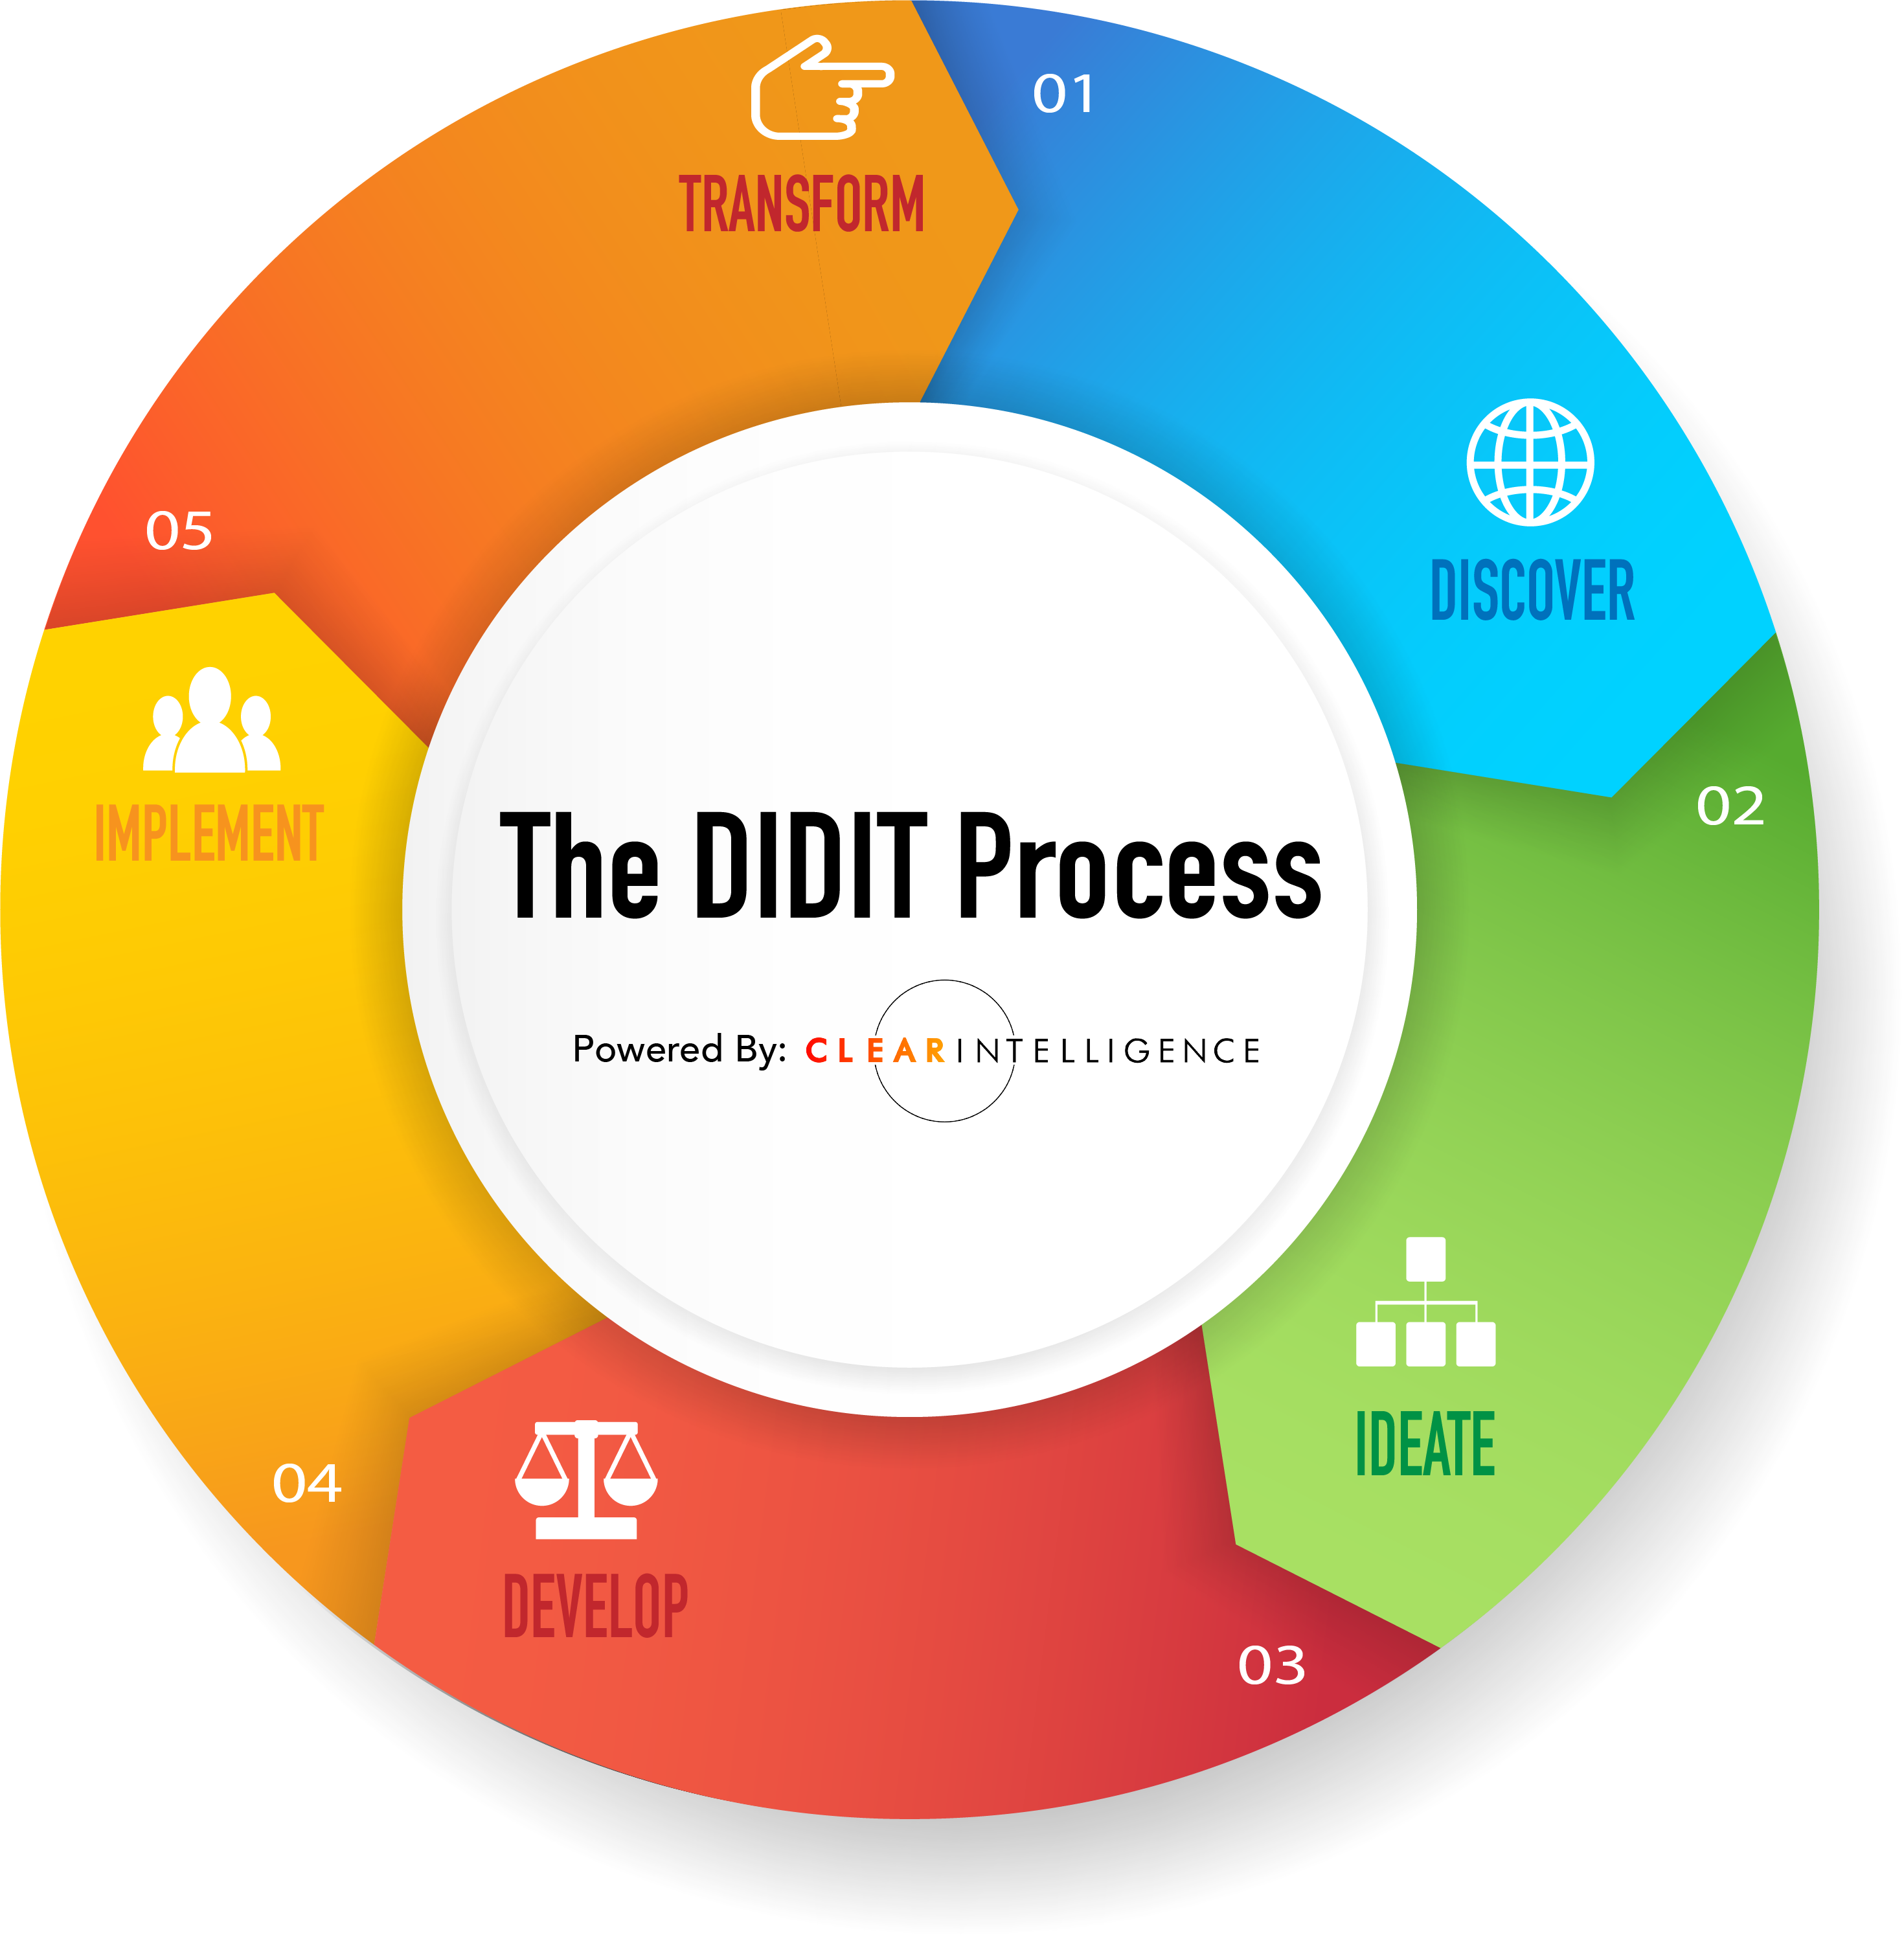 The DIDIT Process